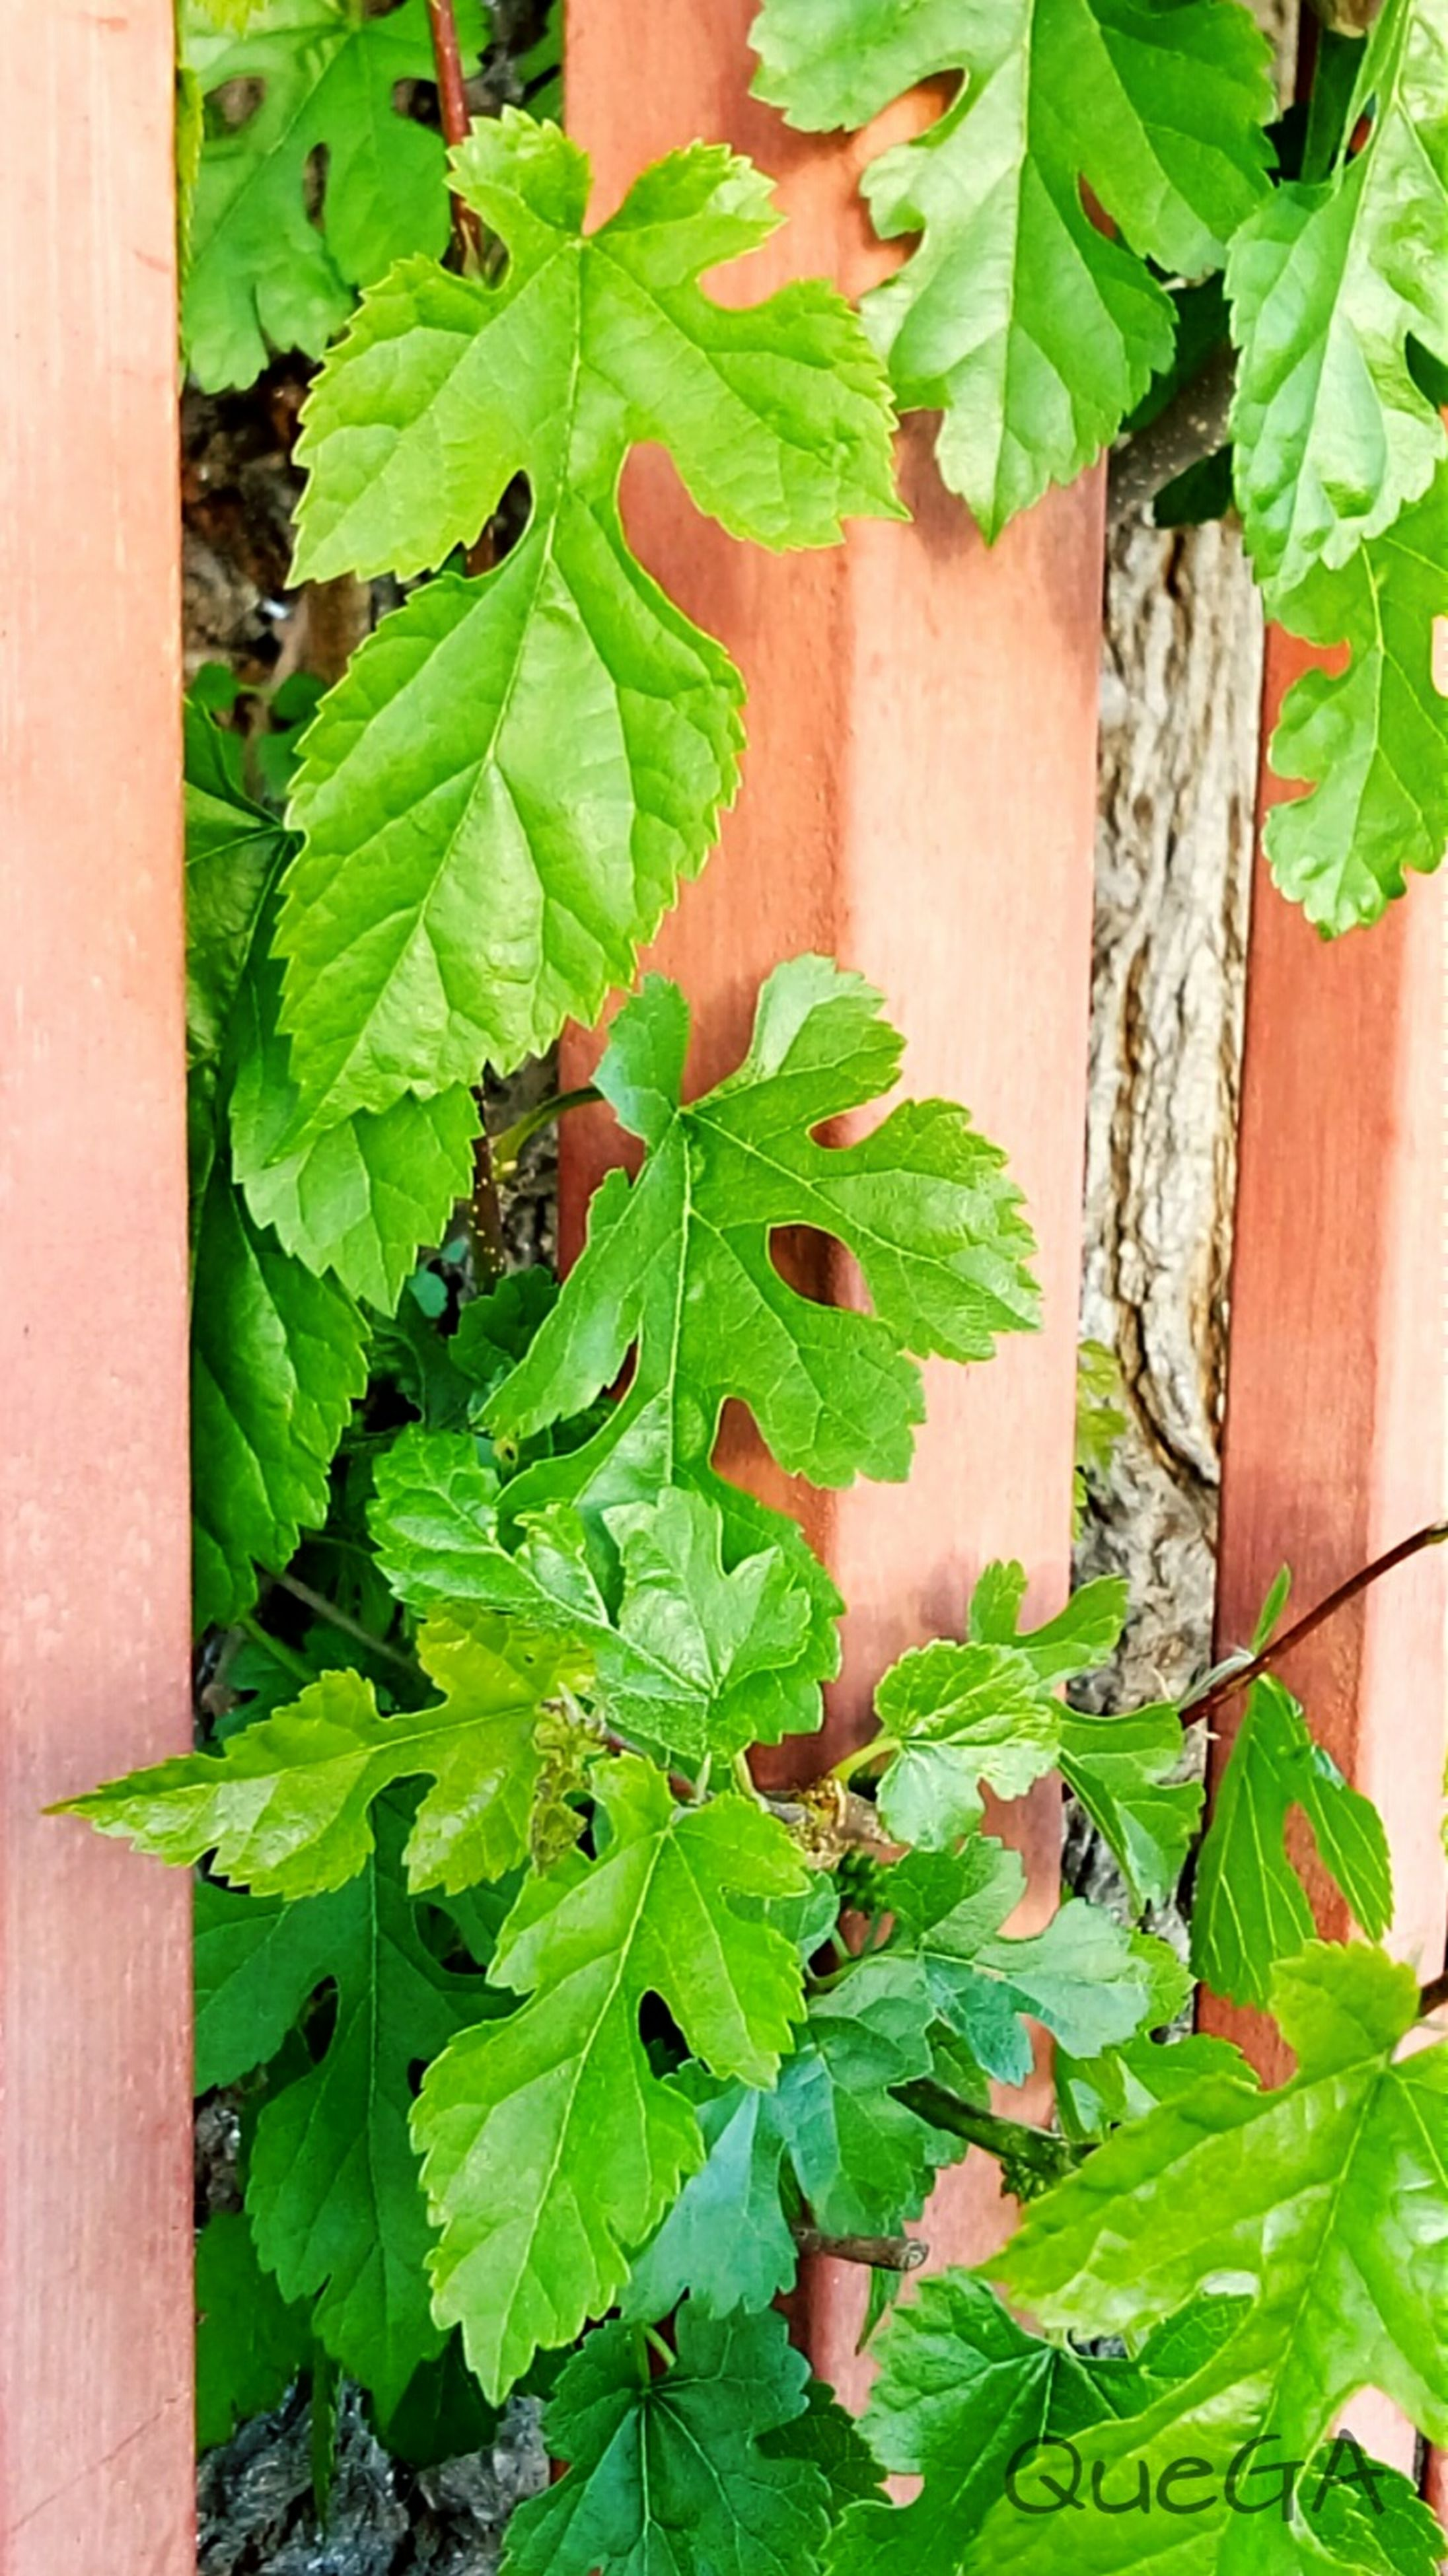 leaf, green color, growth, plant, ivy, nature, close-up, green, growing, wood - material, no people, day, front or back yard, leaf vein, creeper plant, outdoors, built structure, potted plant, sunlight, freshness